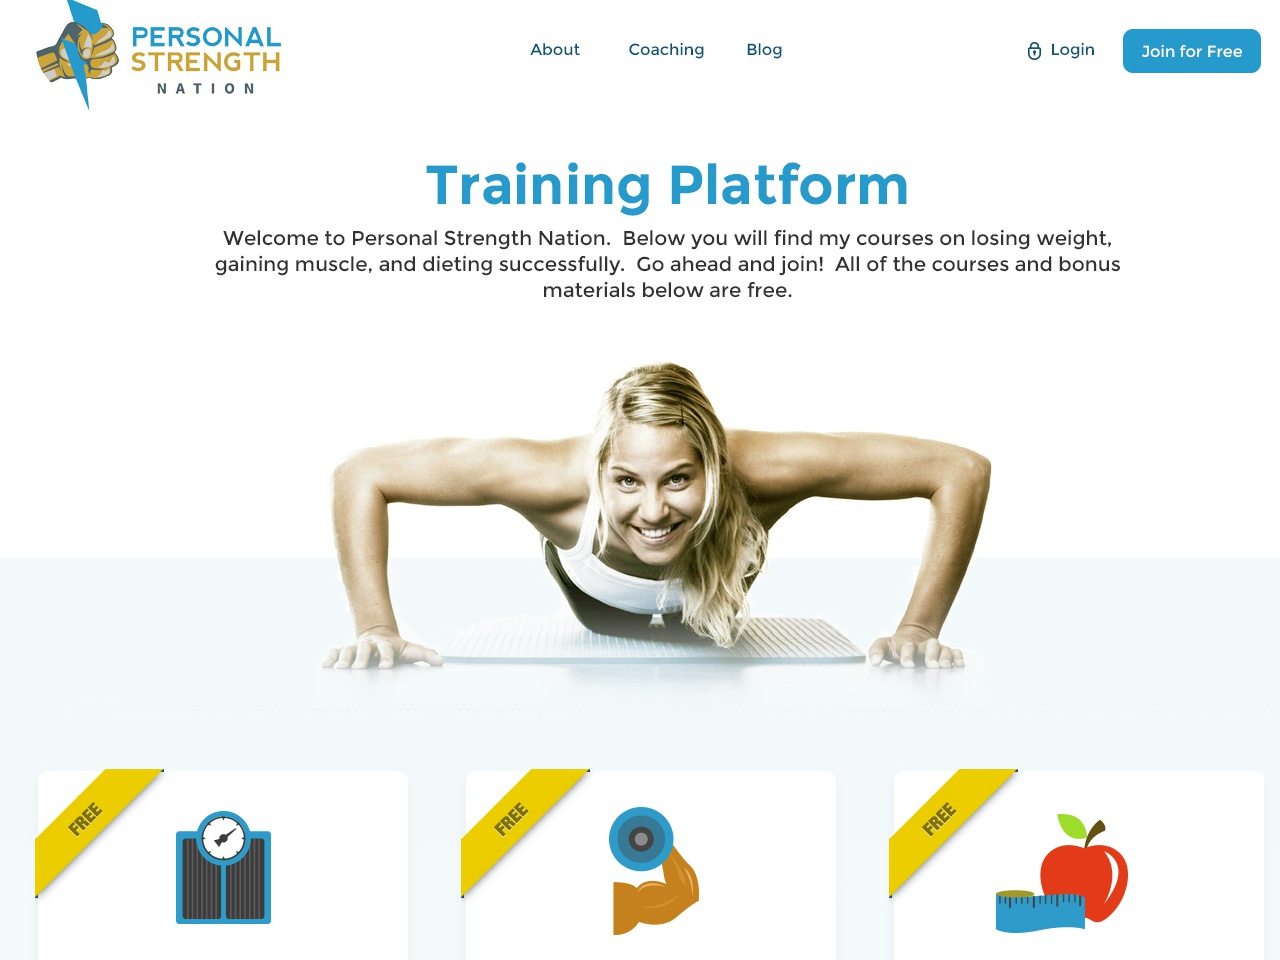 Body training program landing page